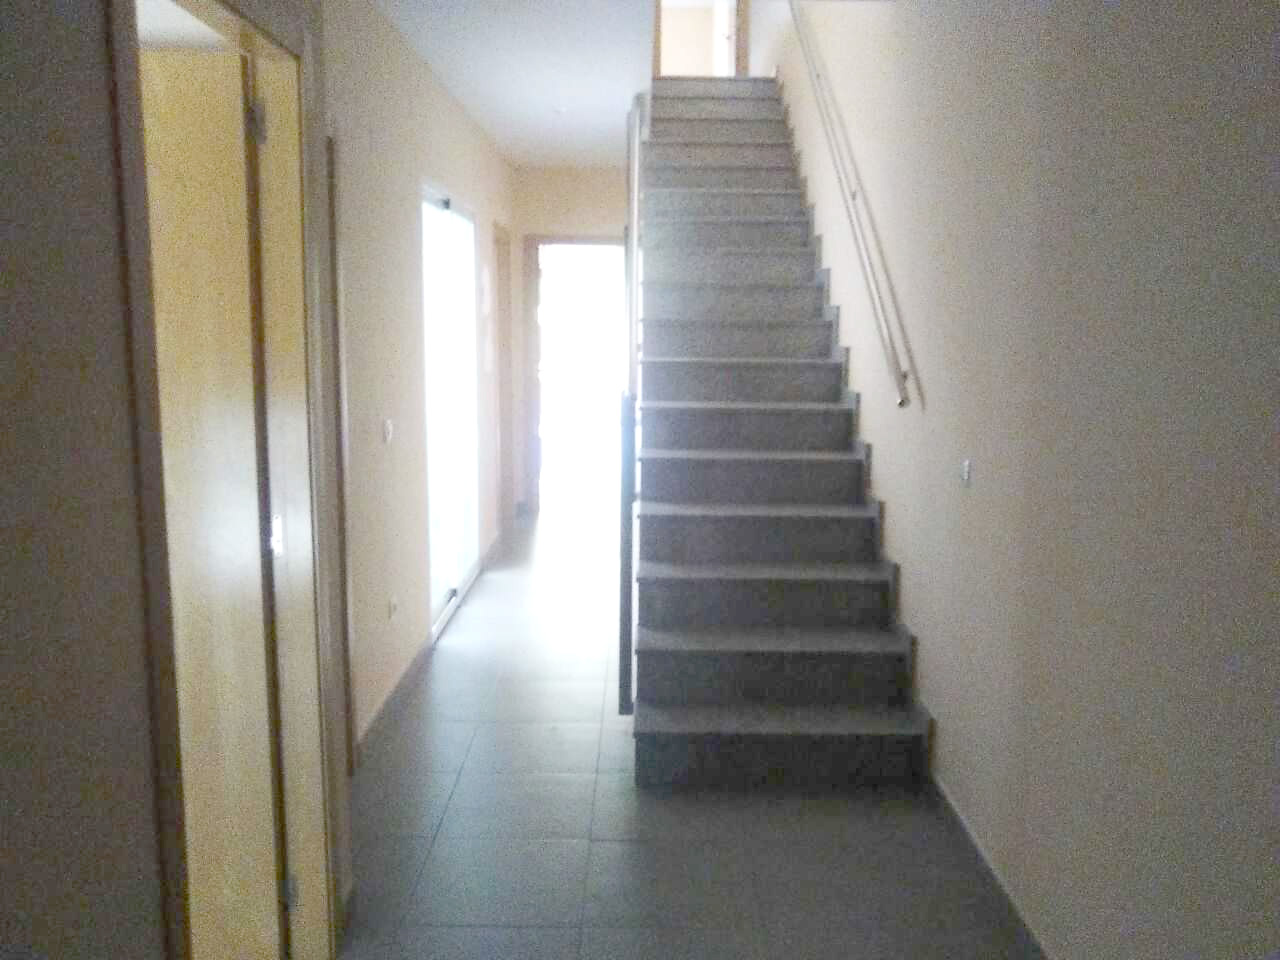 Photo  number 2: Townhouse in Sale in Sanet y Negrals, Area Centro. Ref. 5-18-14319 (79525-0001)